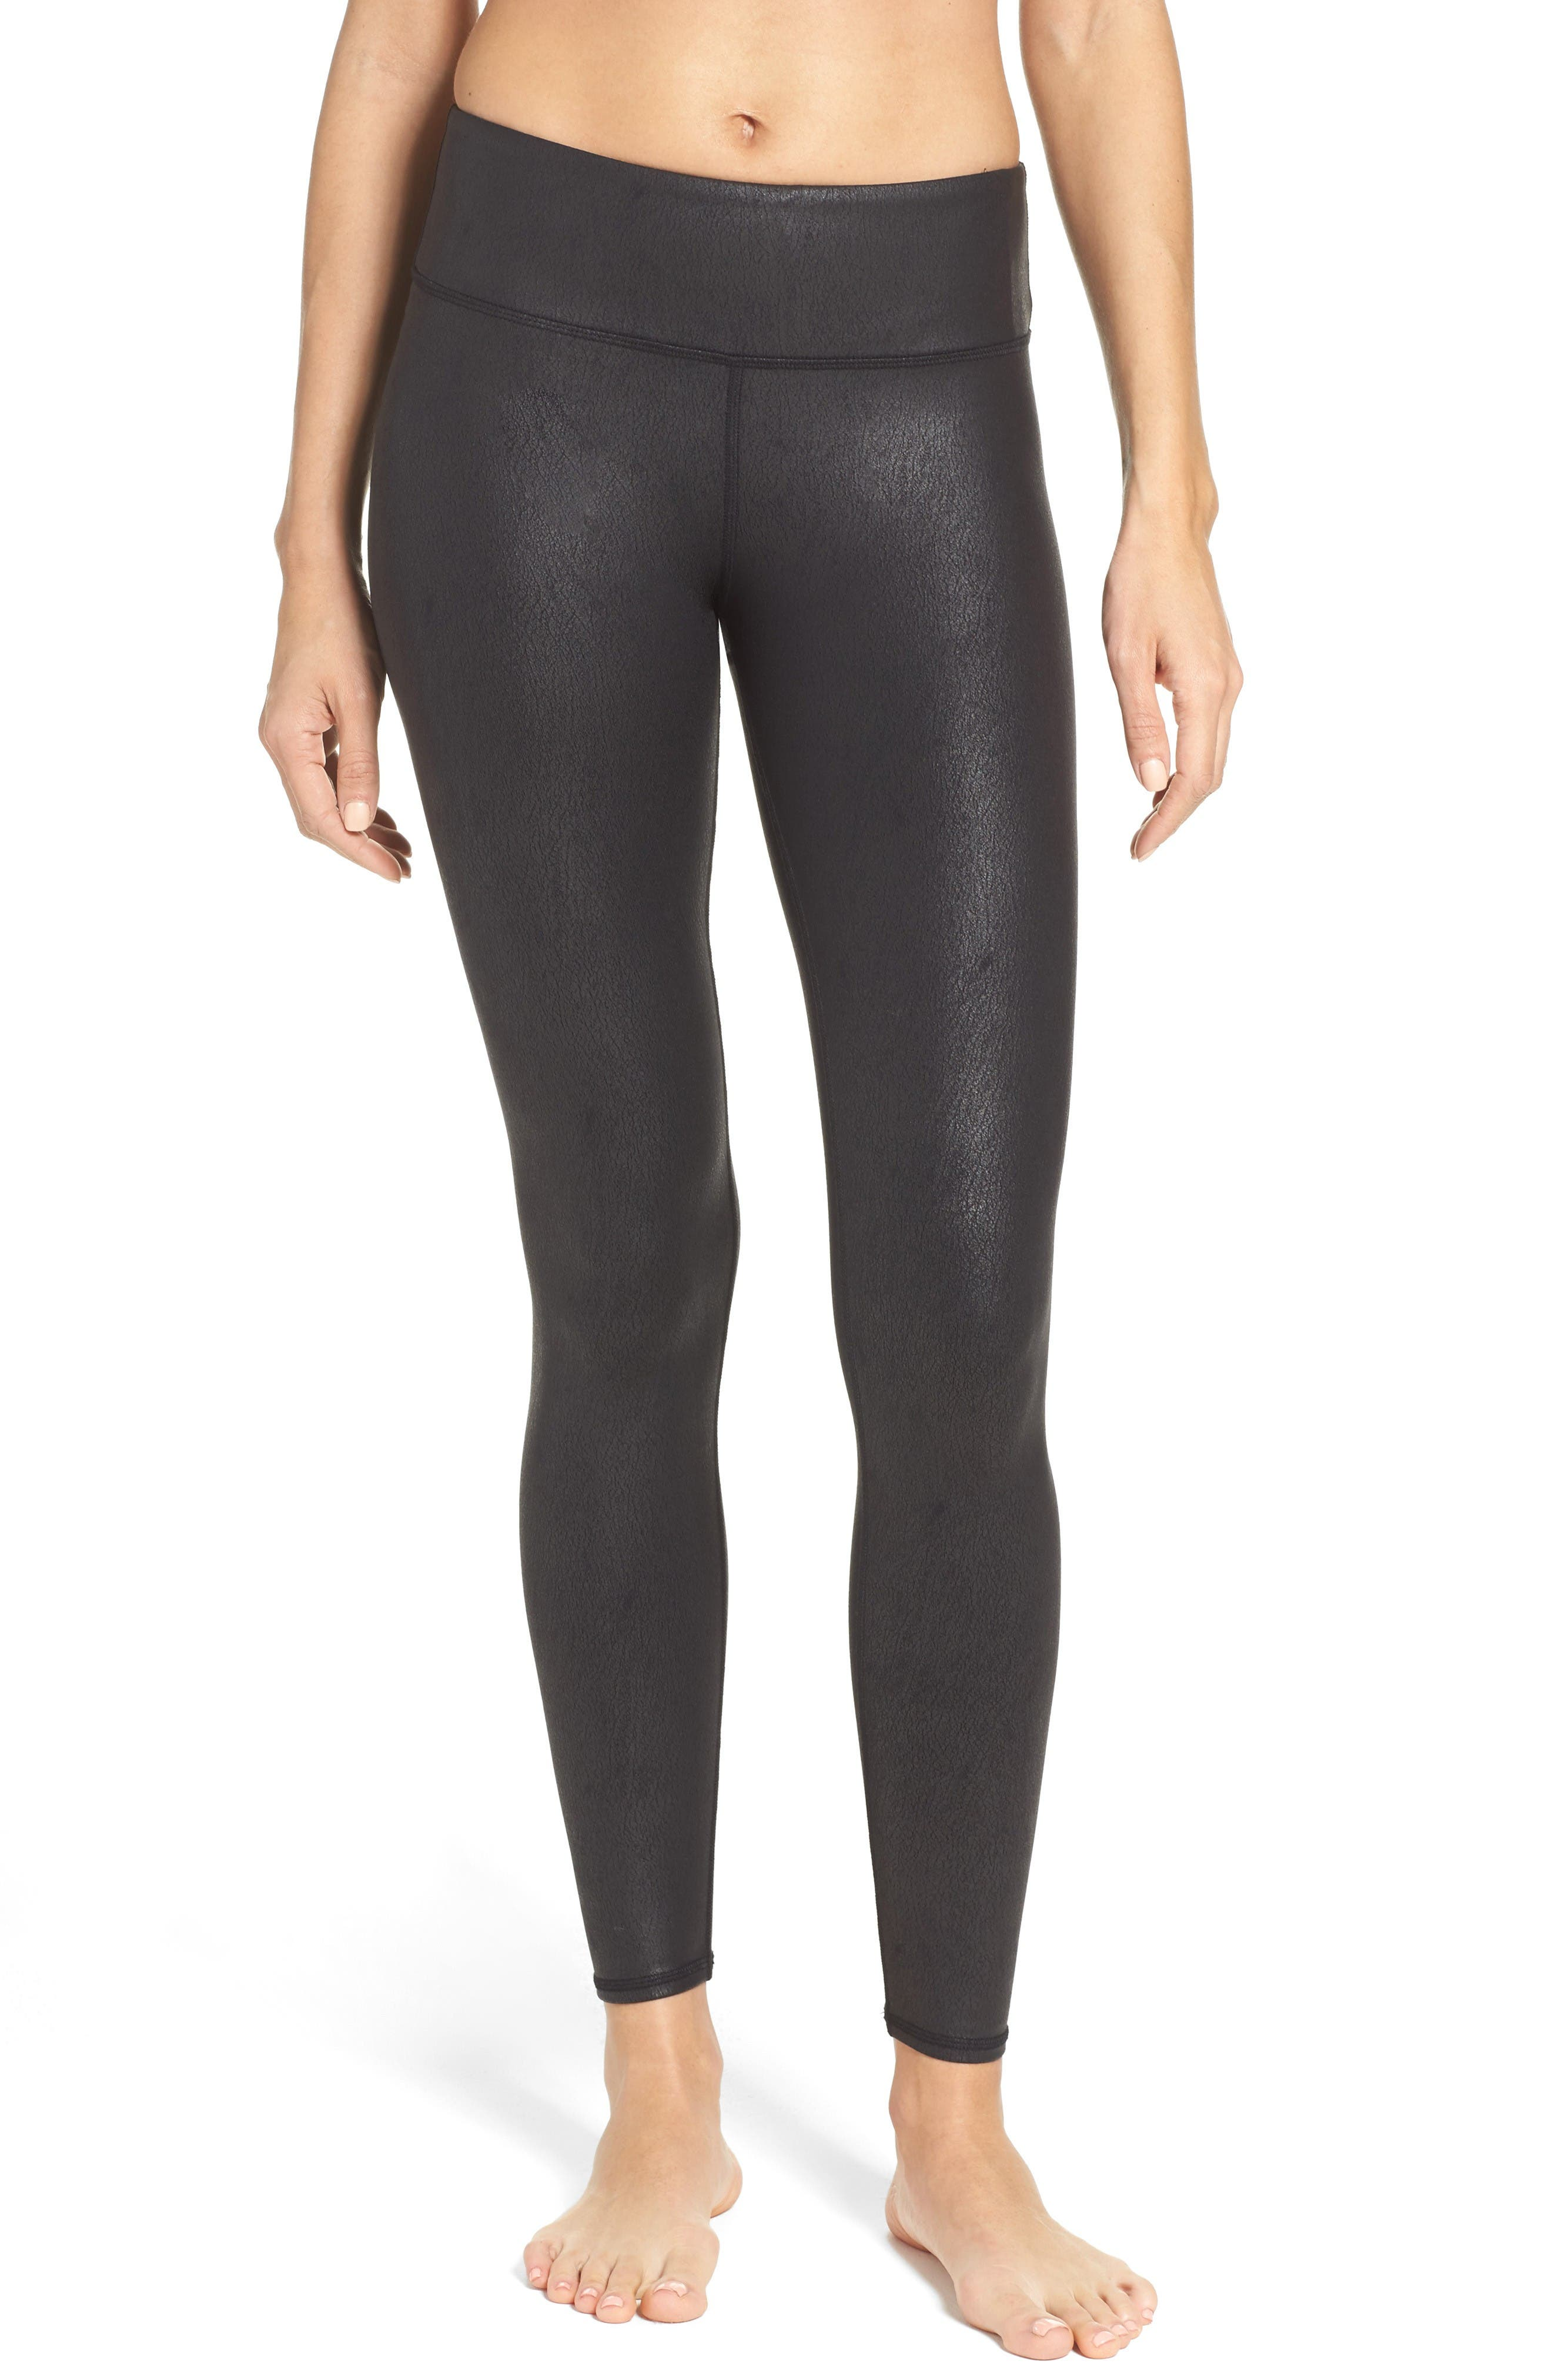 'Airbrushed' Leggings,                             Main thumbnail 1, color,                             Black Performance Leather